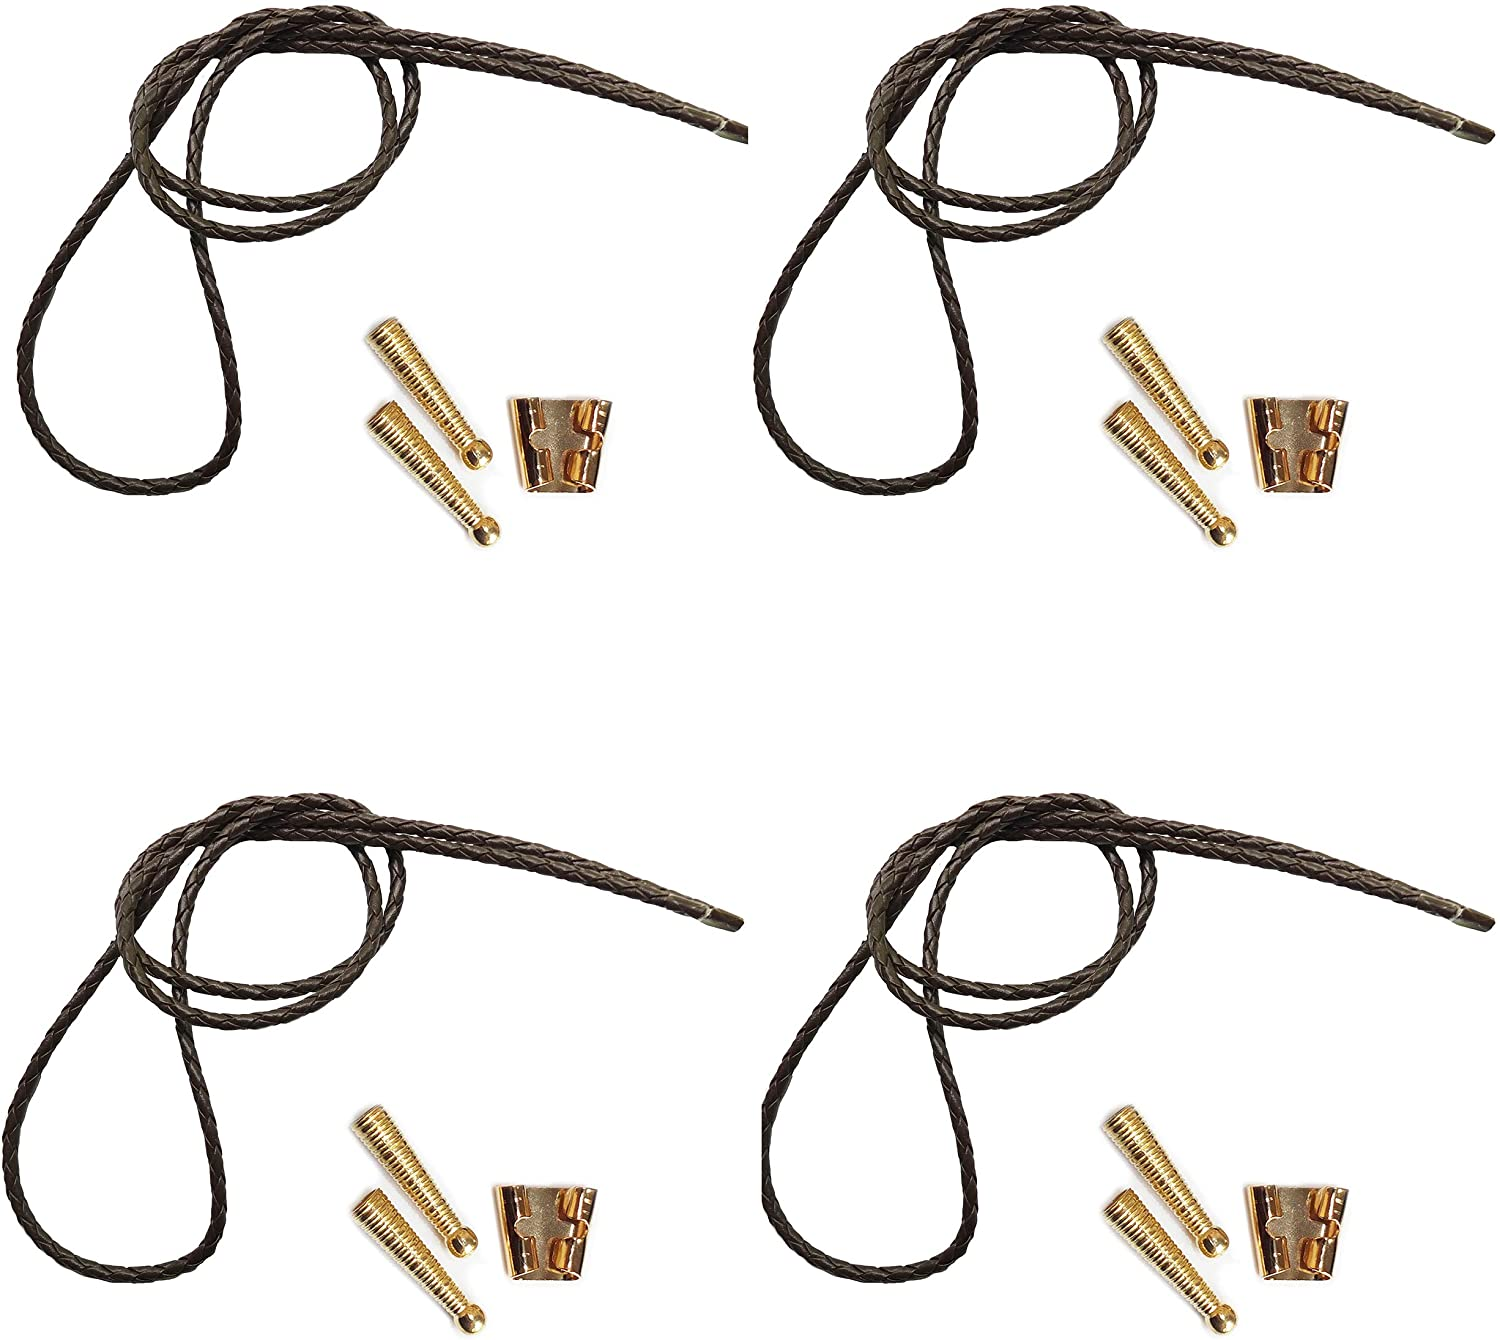 Blank Bolo String Tie Parts Kit Standard Slide Textured Tips Brown Vinyl Braid DIY Gold Tone Supplie